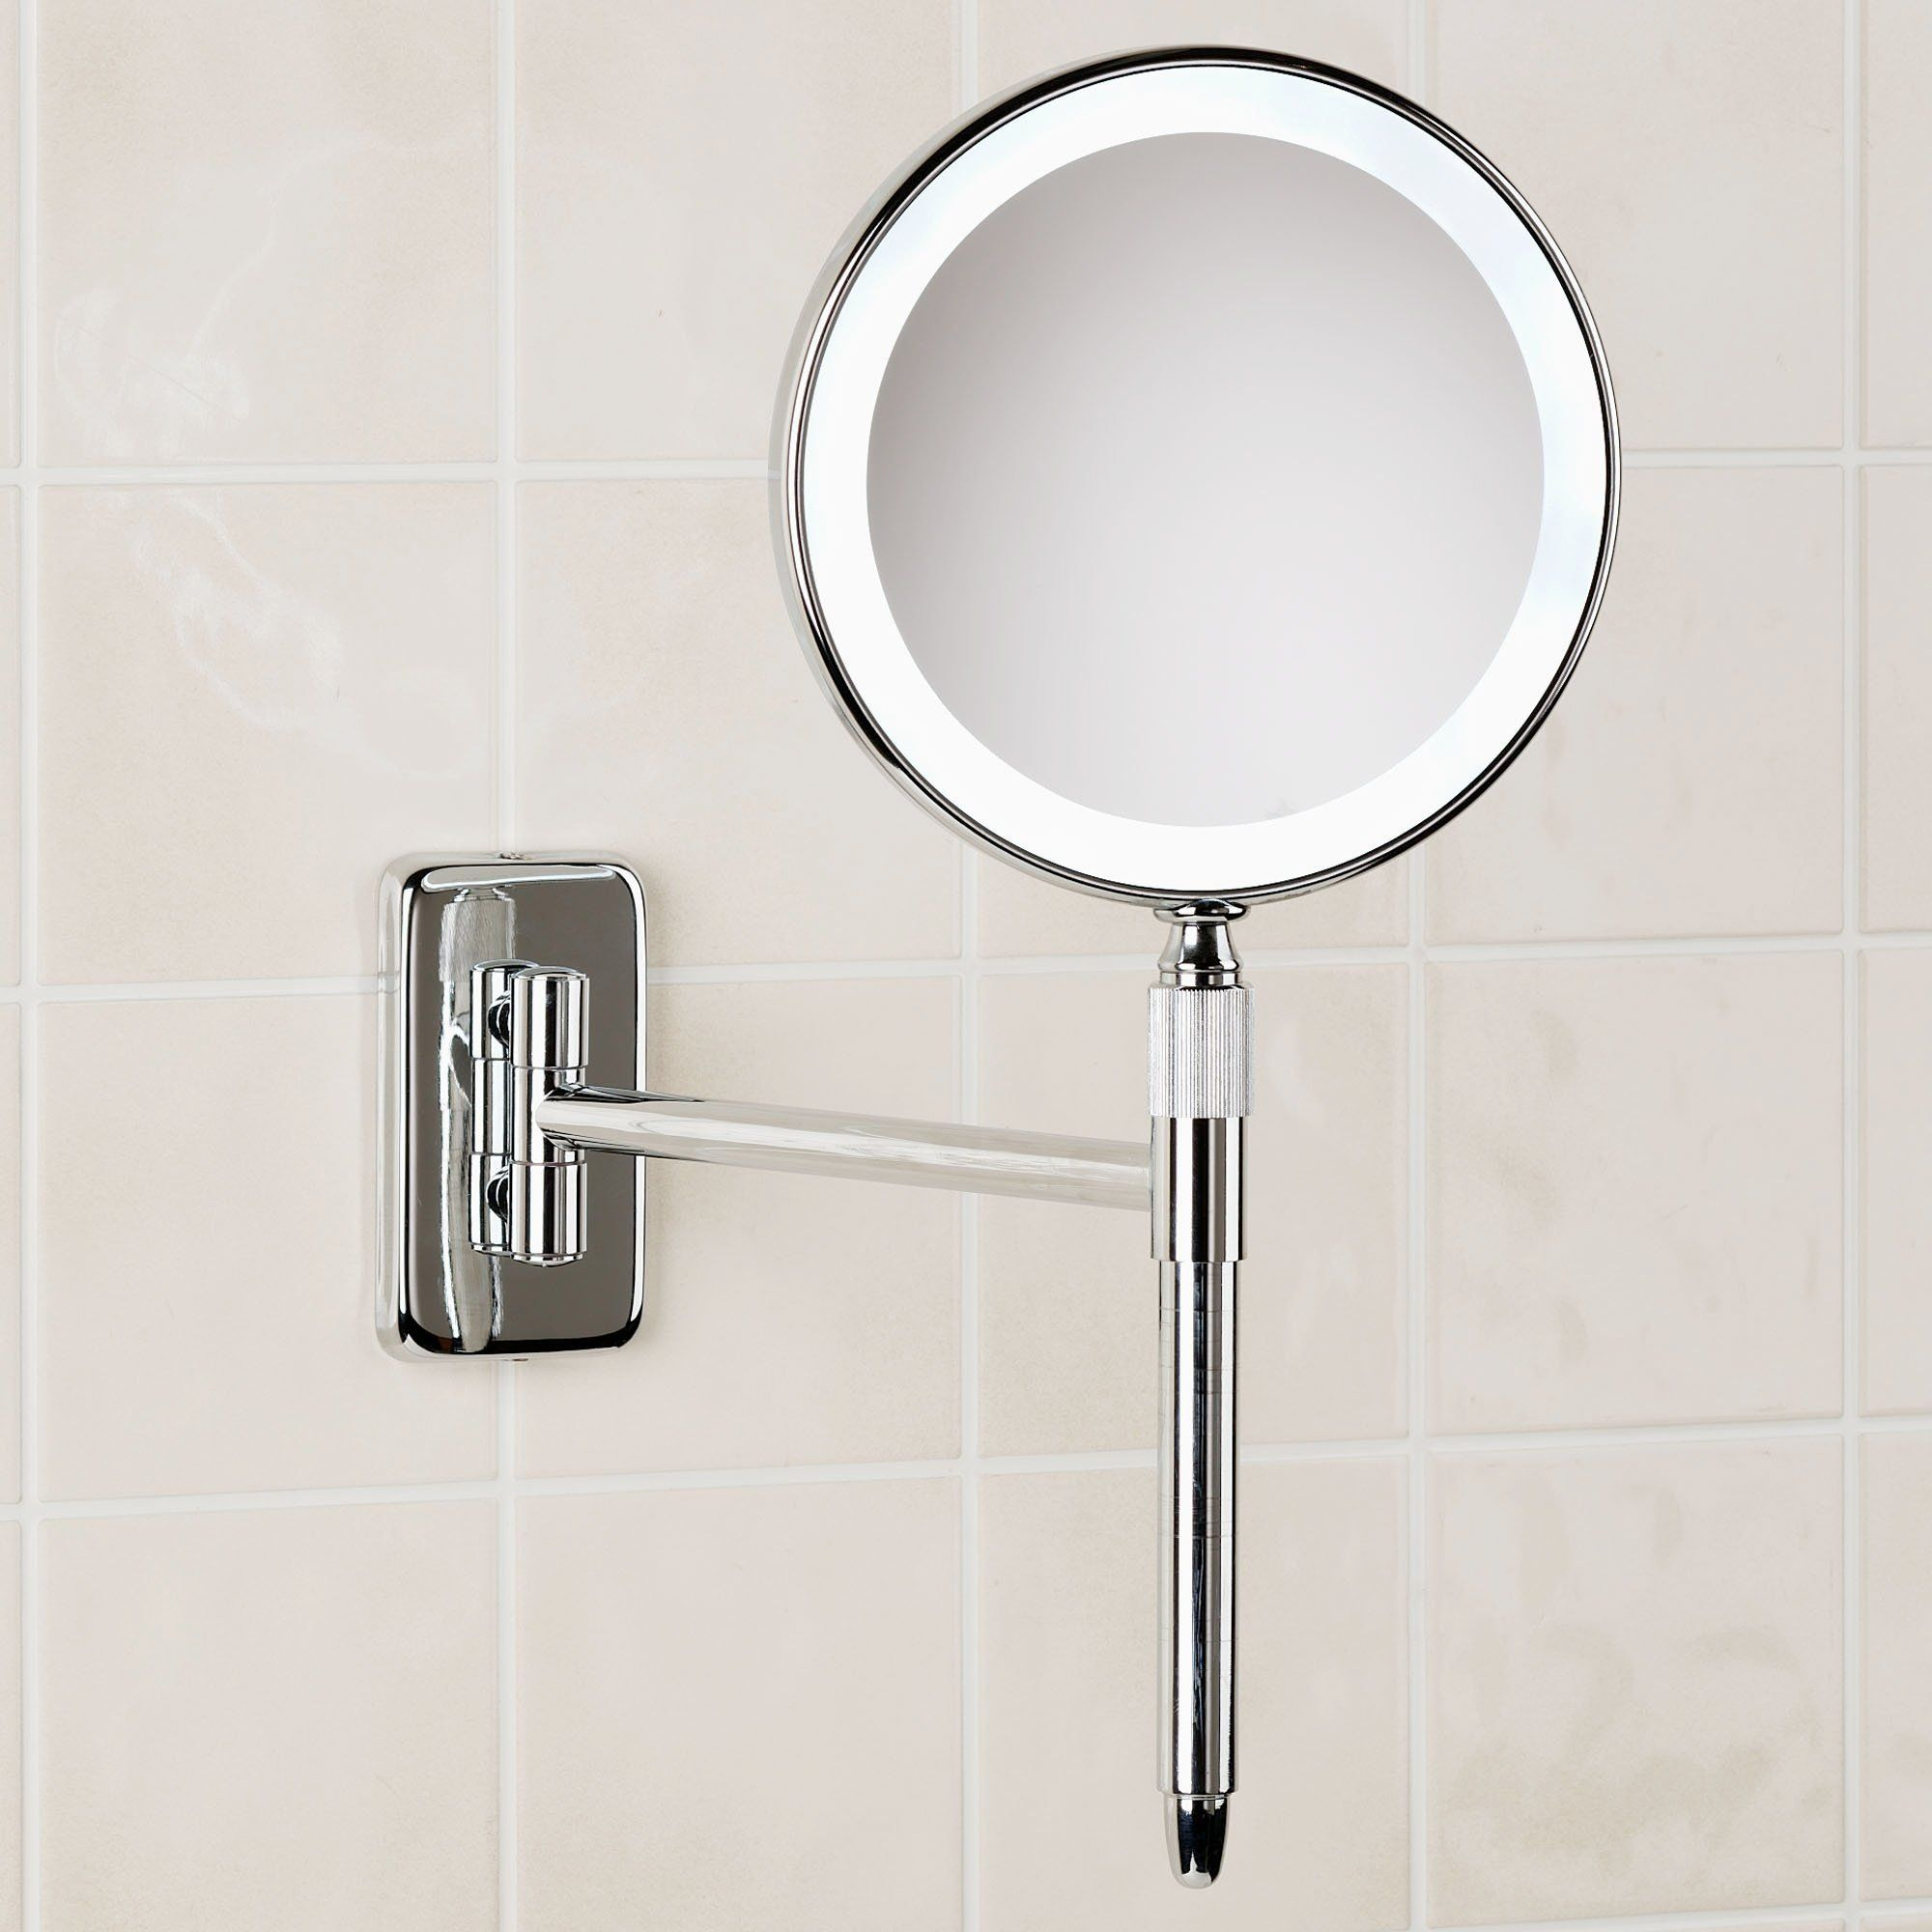 Best Rated Lighted Makeup Mirror Wall Mounted Lighted Makeup Mirror Makeup Mirror With Lights Wall Mounted Makeup Mirror Lighted wall mounted make up mirror